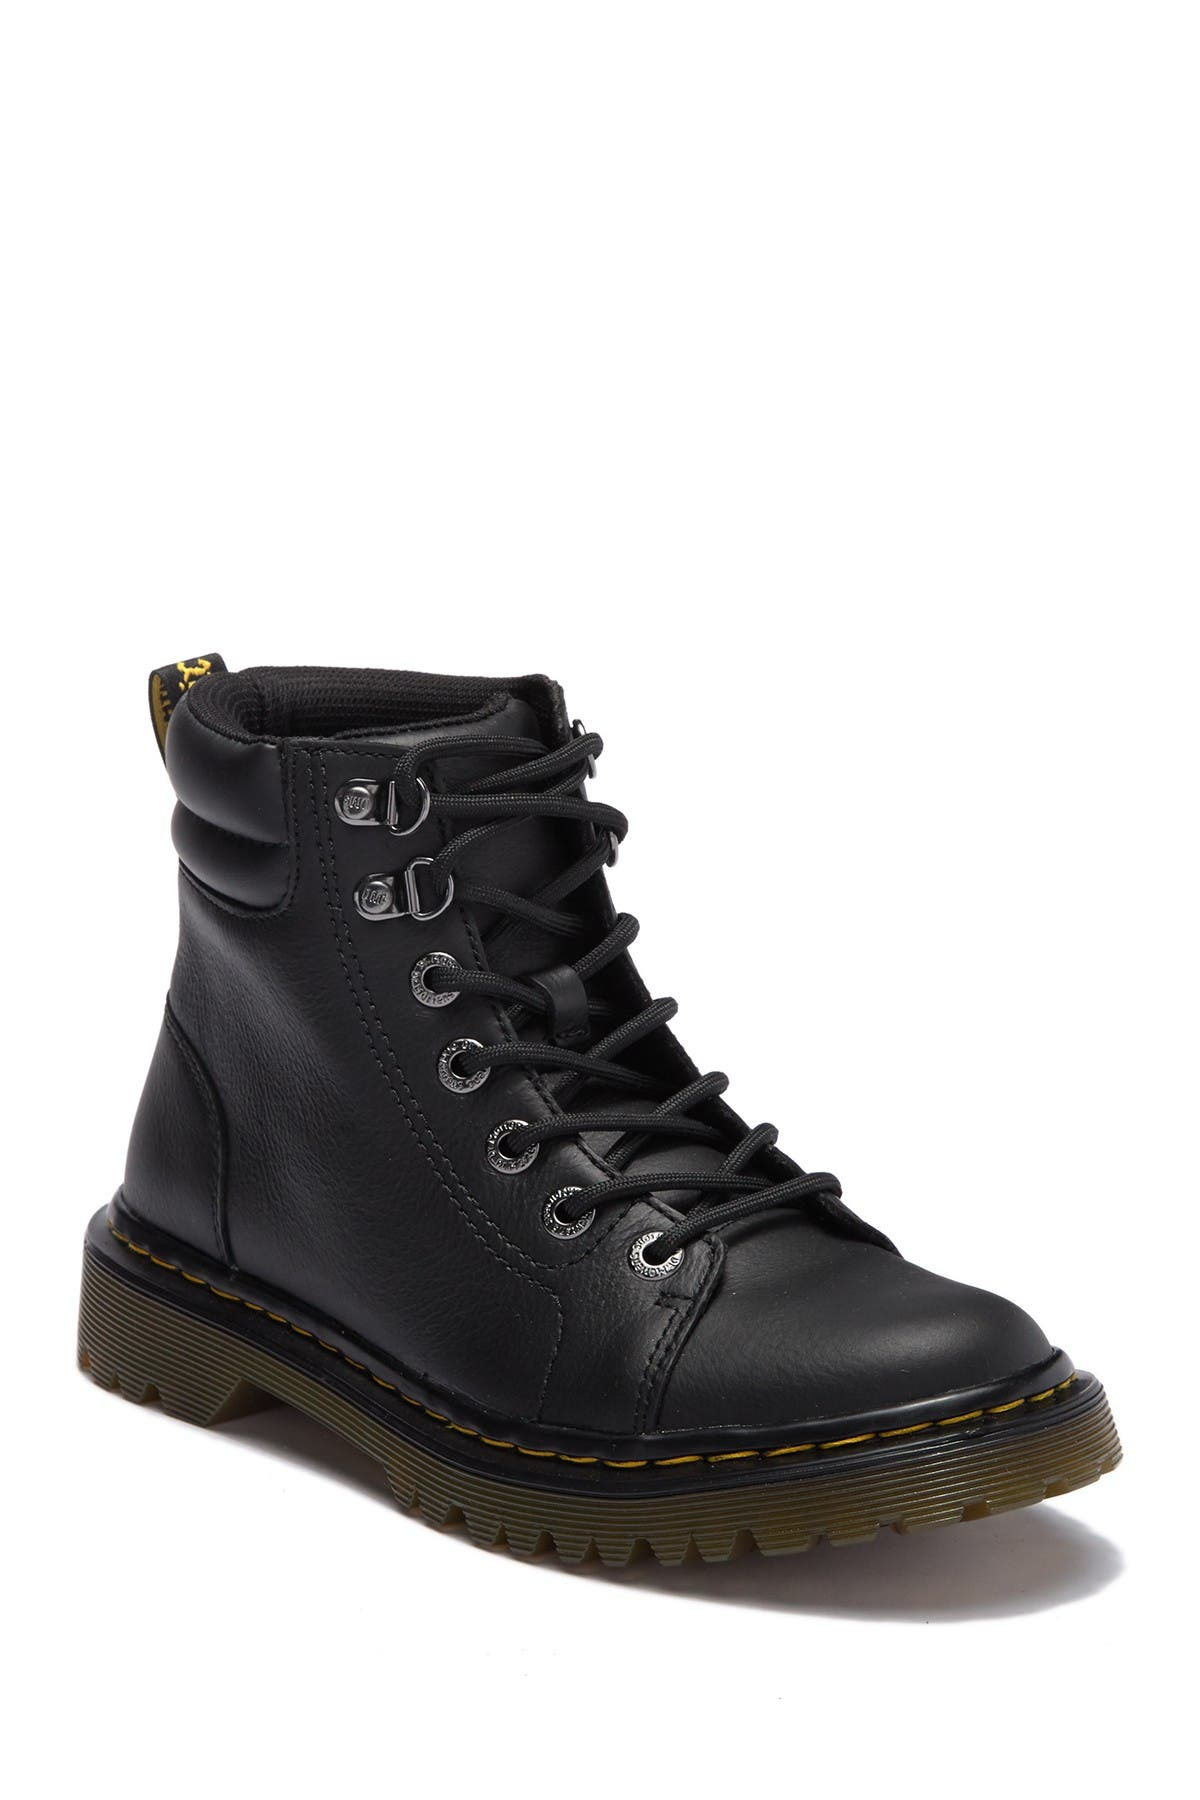 Image of Dr. Martens Faora Mid Top Leather Boot